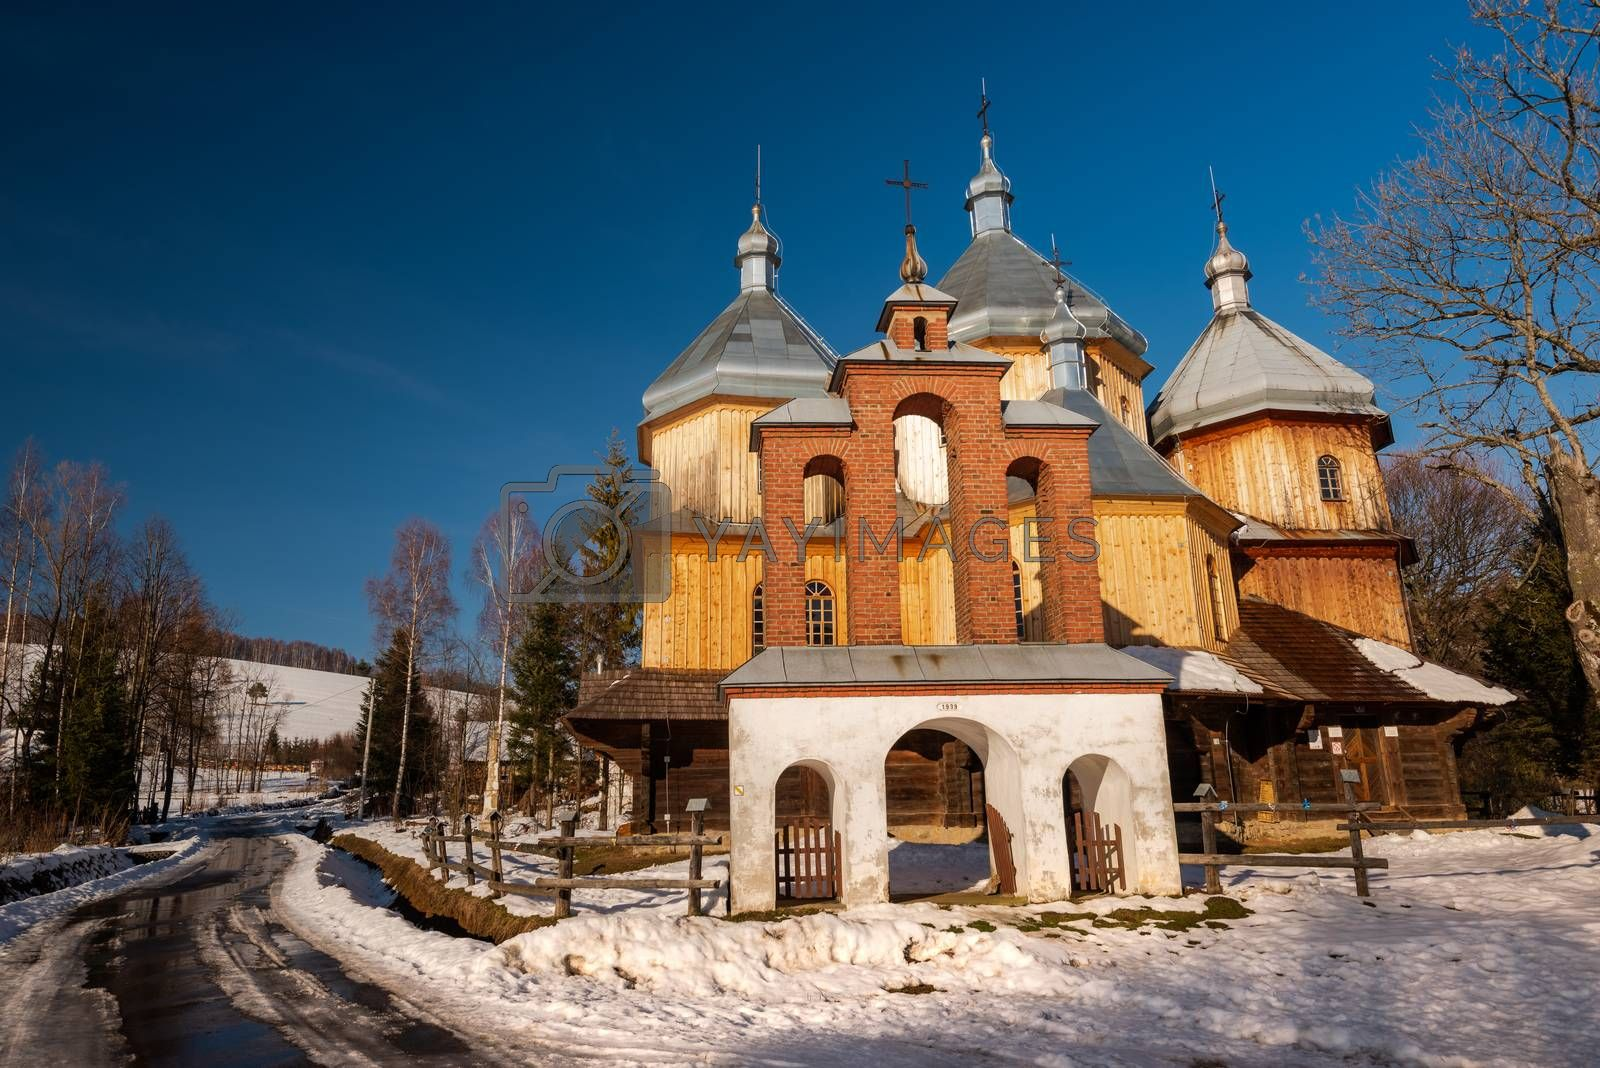 Wooden Orthodox Church in Bystre. Carpathian Mountains and Biesz by merc67